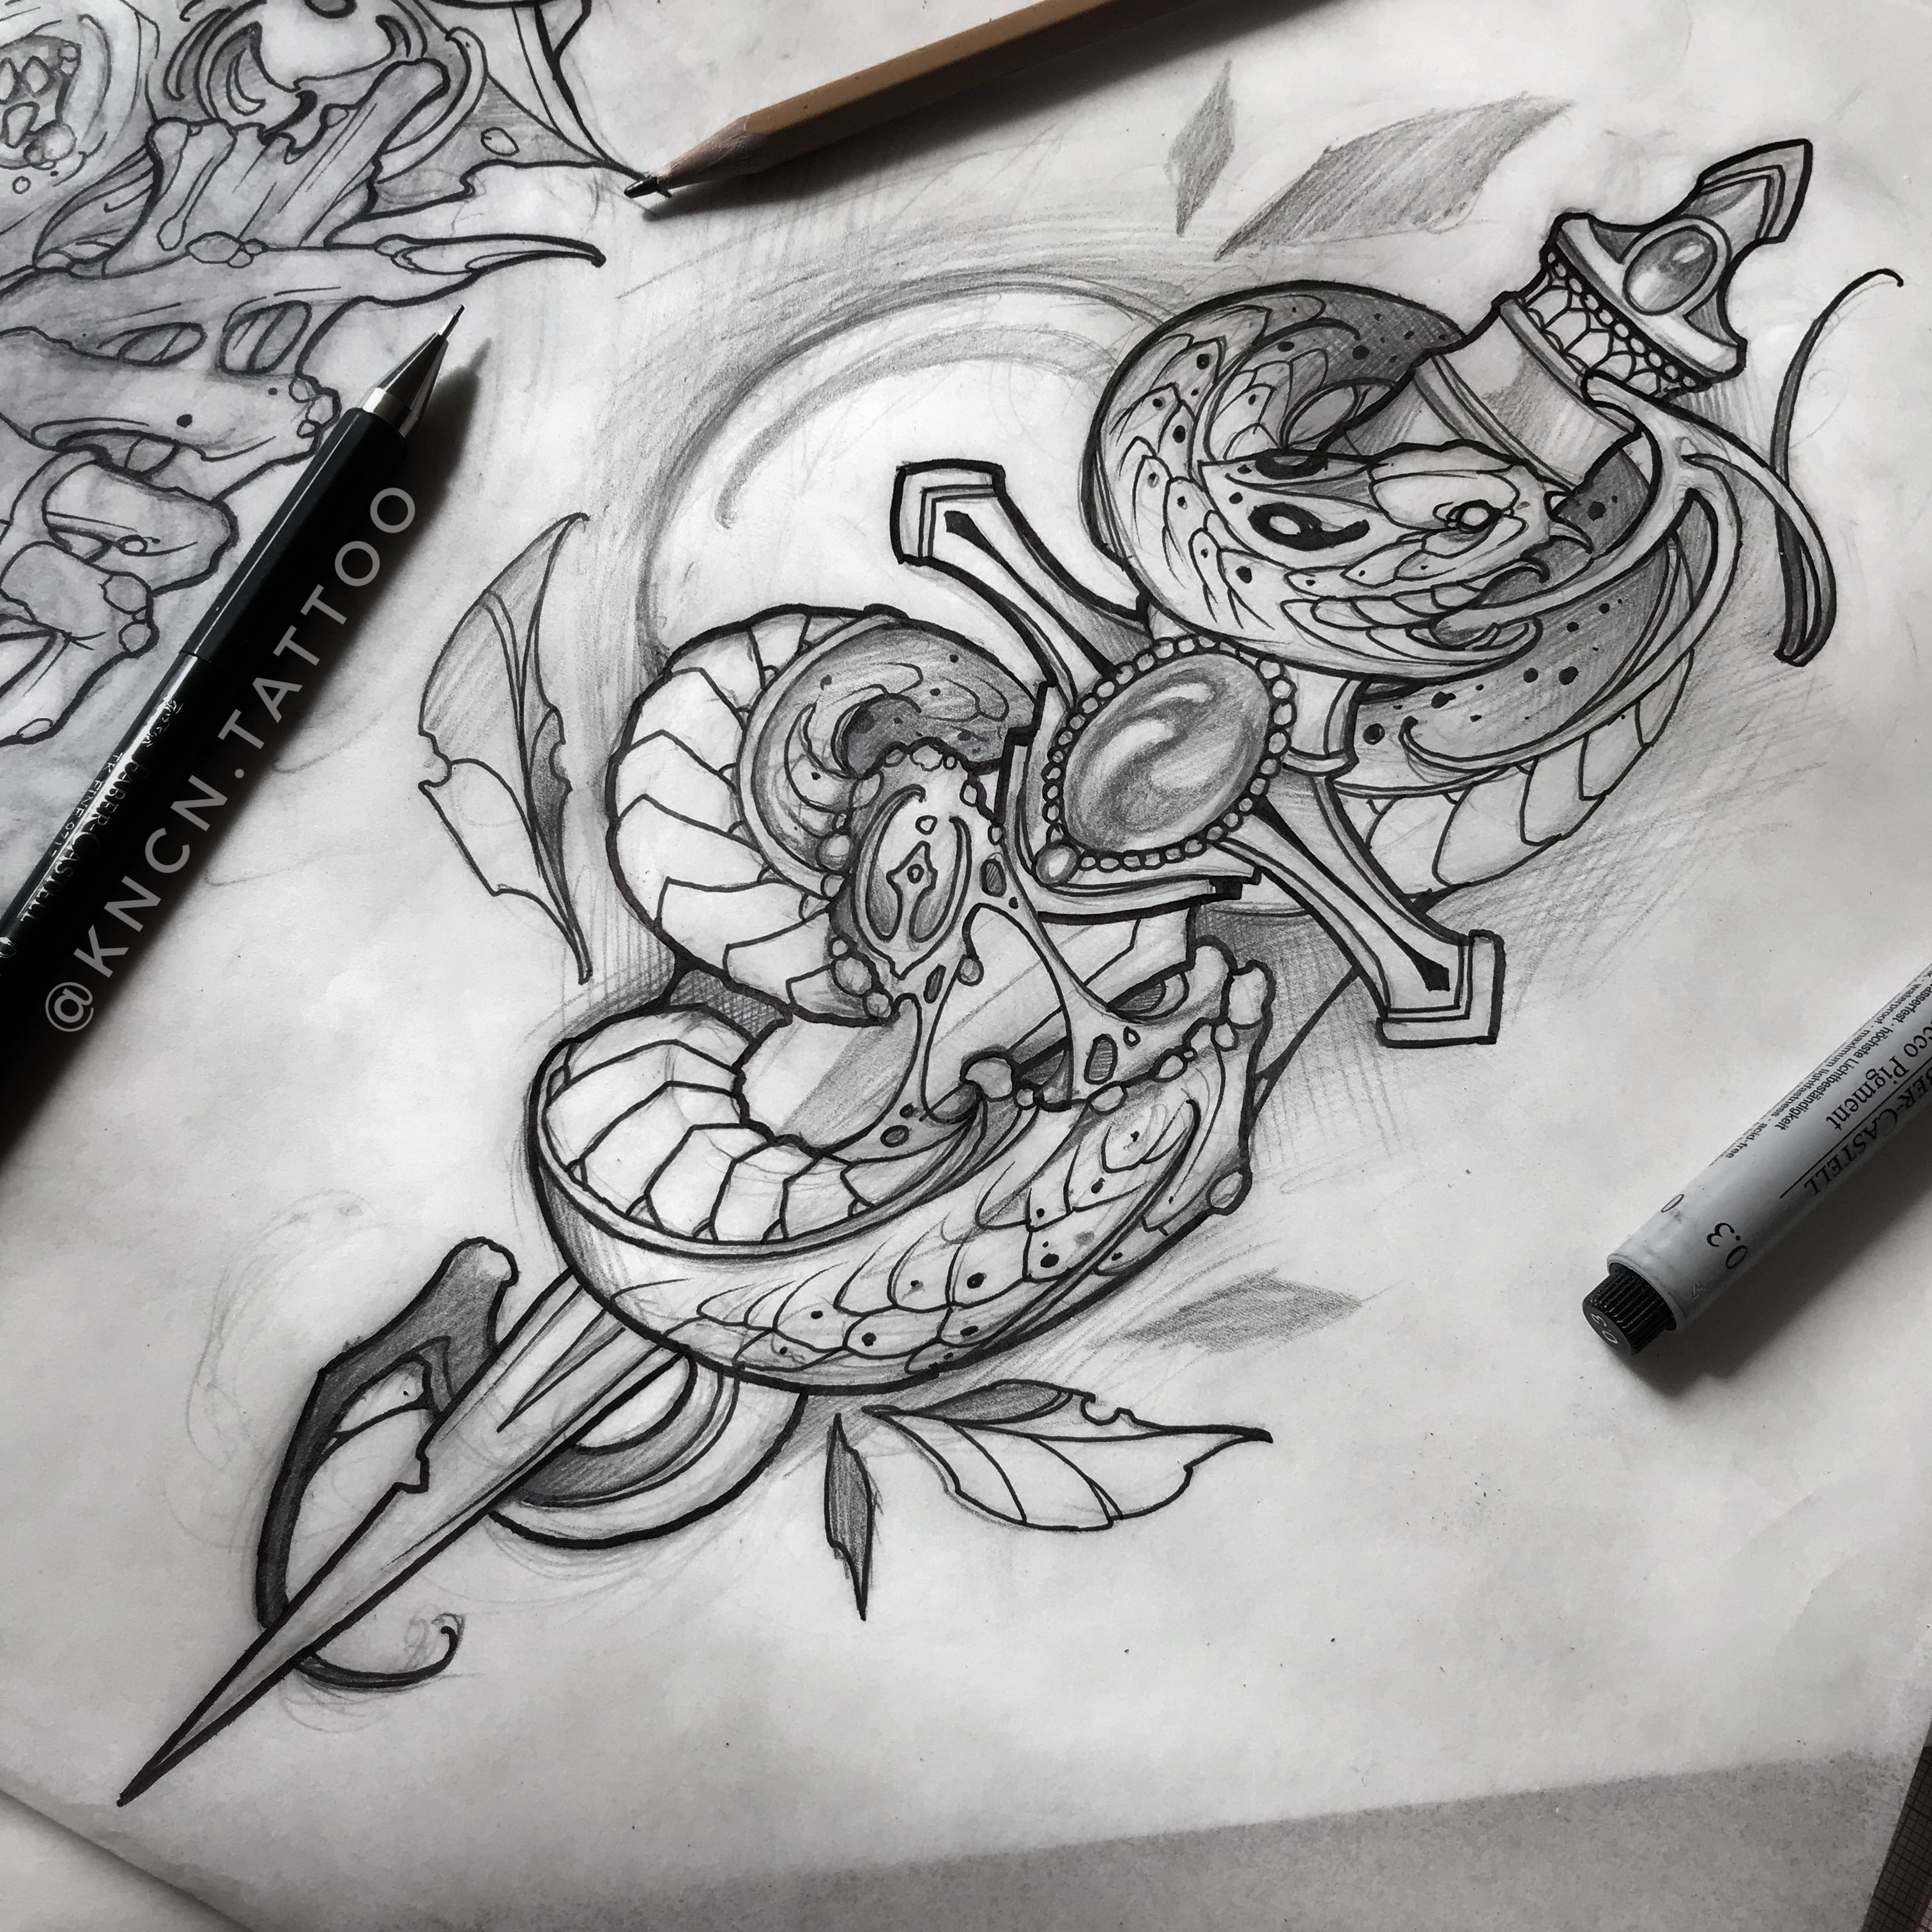 Neotraditional Snake Tattoo Design Kncn Tattoo Tattoo Neotraditional Art Tradition Tatuaje De Serpiente Tradicional Tatuajes Tradicionales Brazos Tatuados